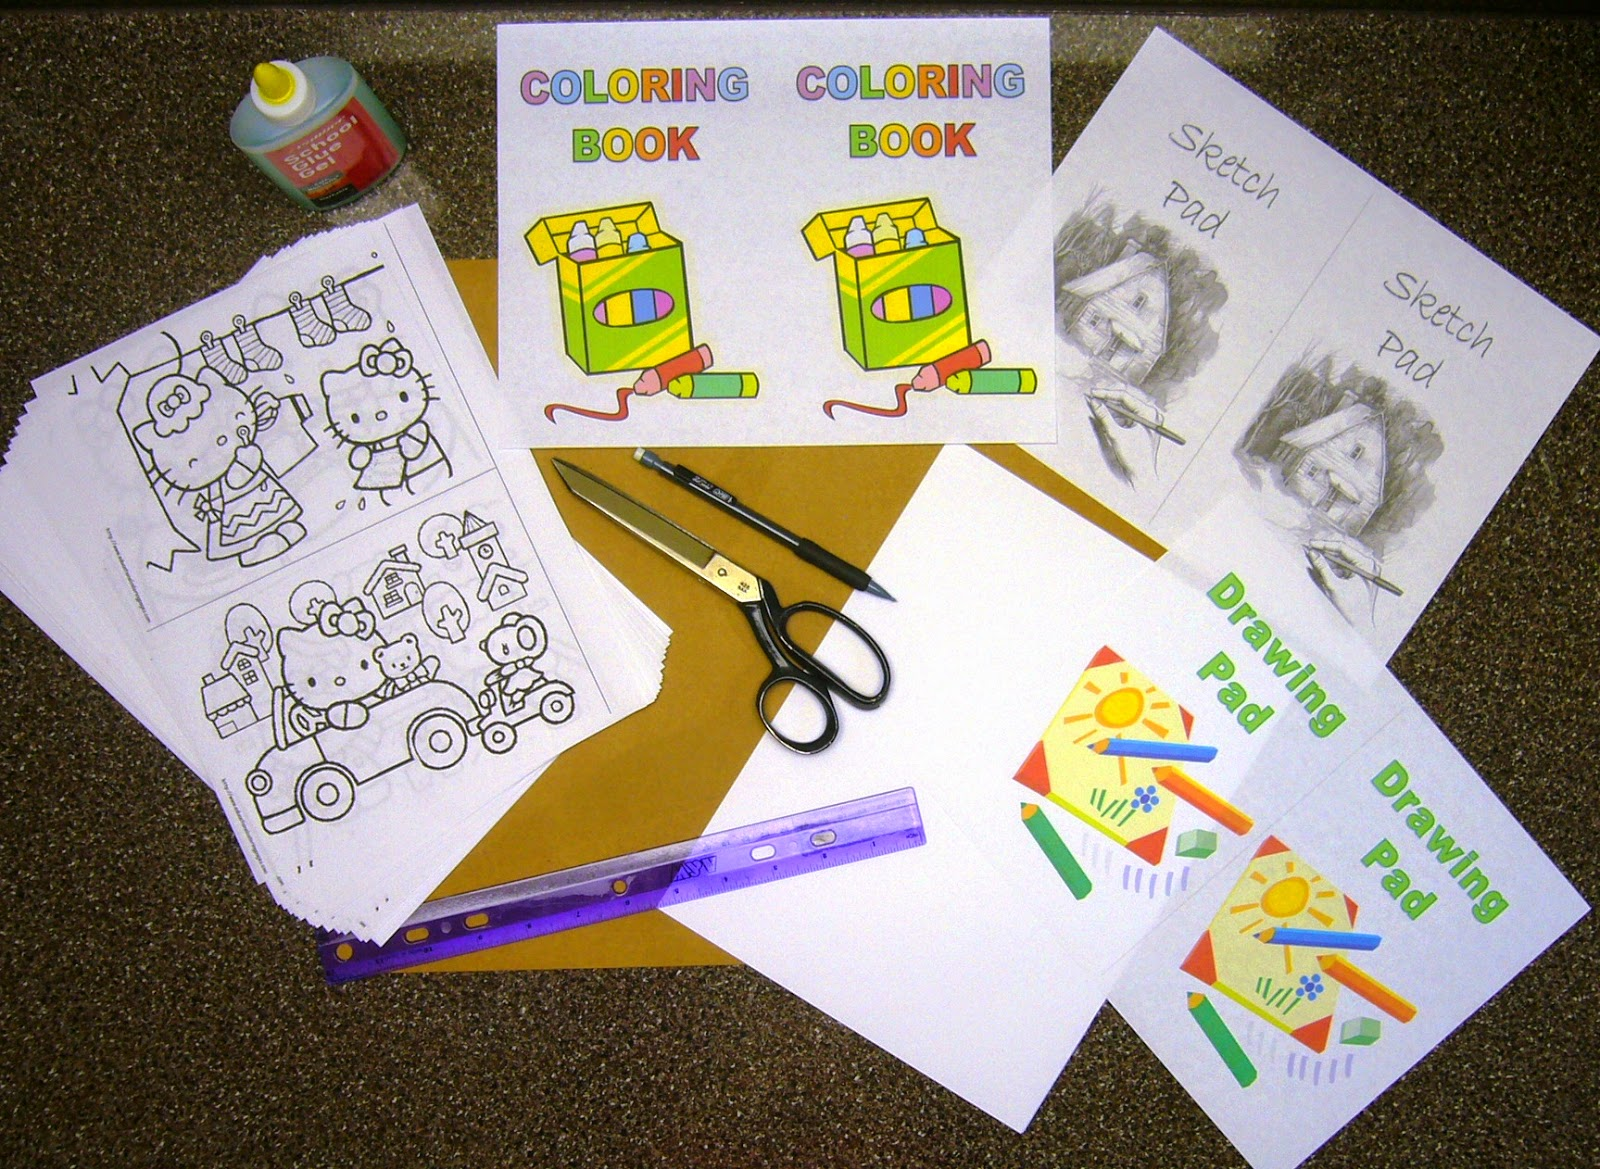 How to make coloring books at home